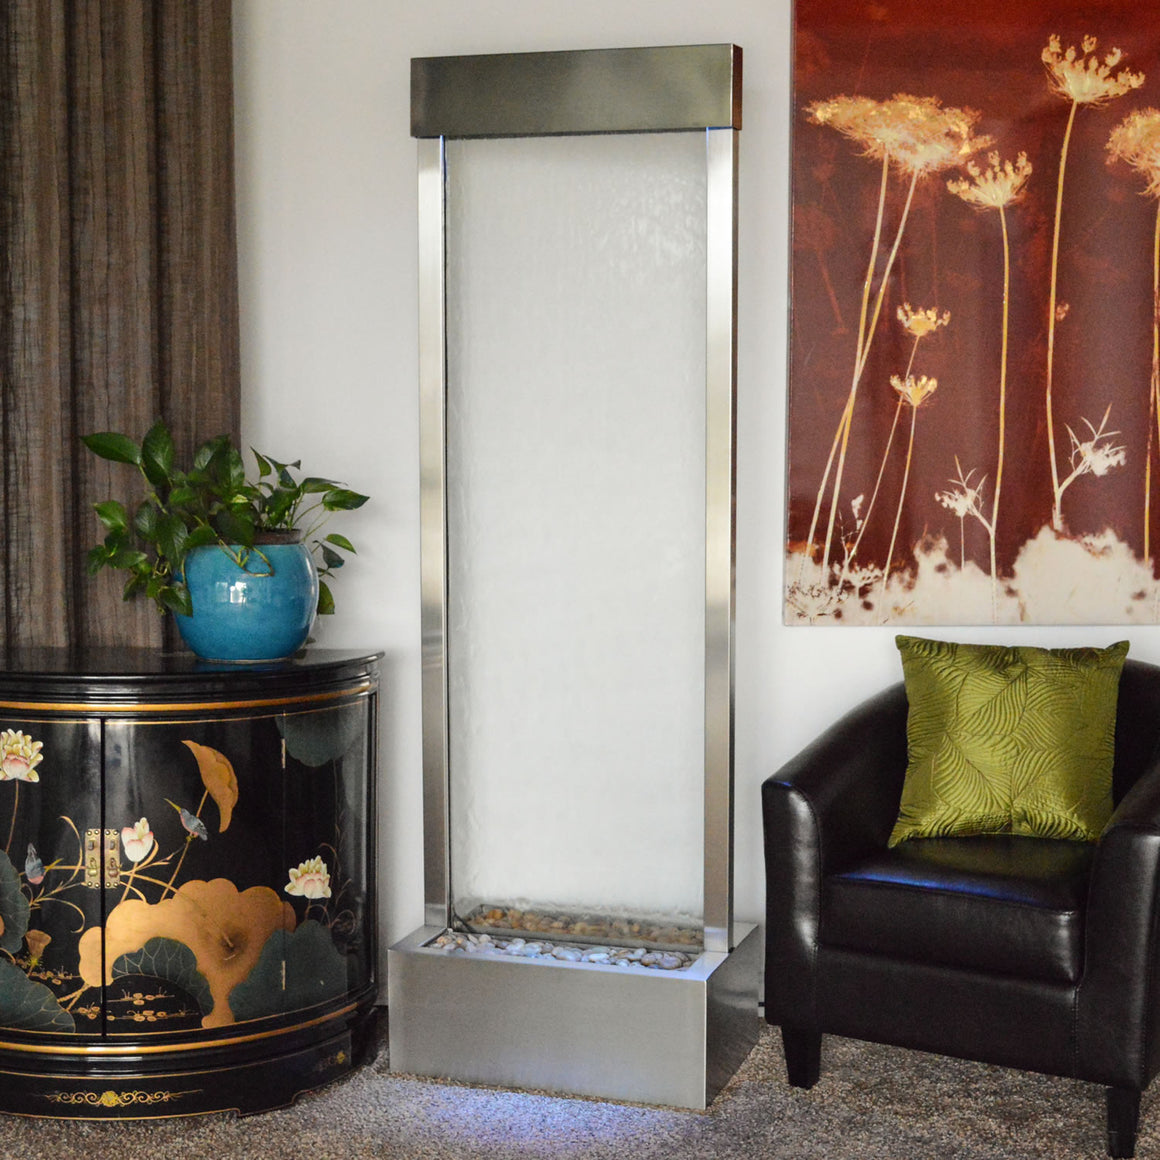 6' Gardenfall Clear Glass and Brushed Stainless Steel Frame with LED Lights - Soothing Walls